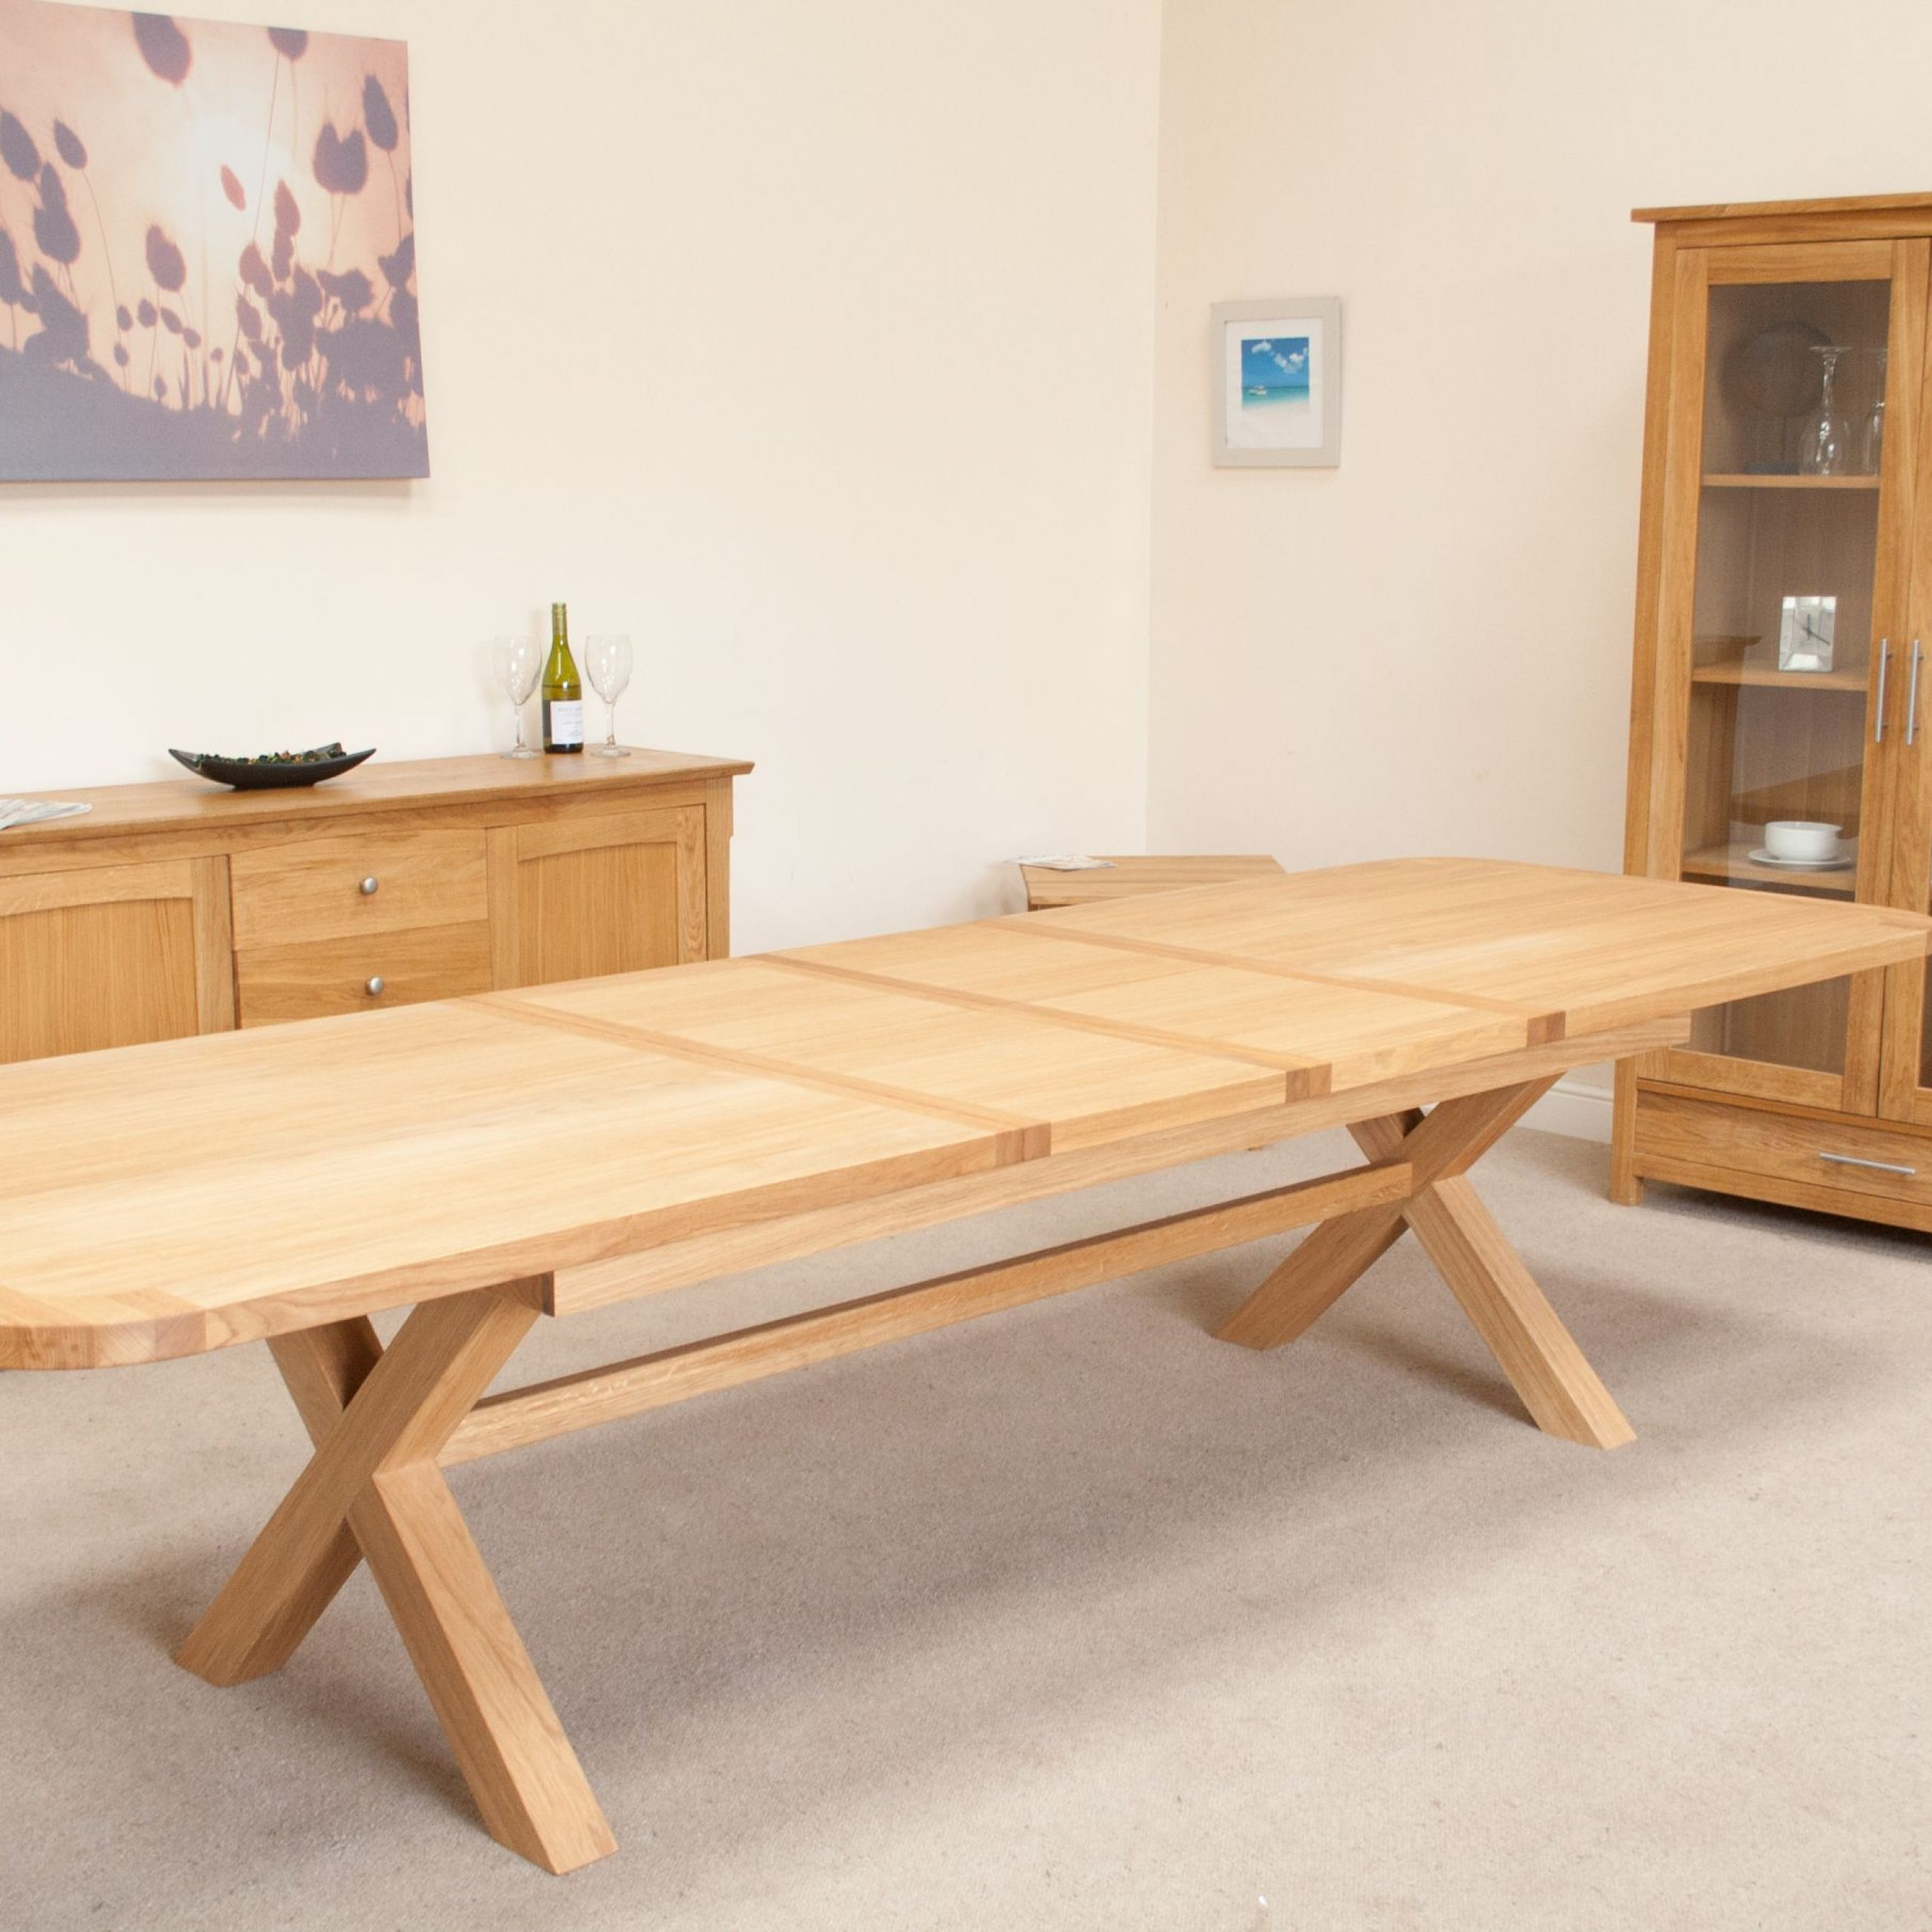 Huge Big Regarding 8 Seater Wood Contemporary Dining Tables With Extension Leaf (View 25 of 30)